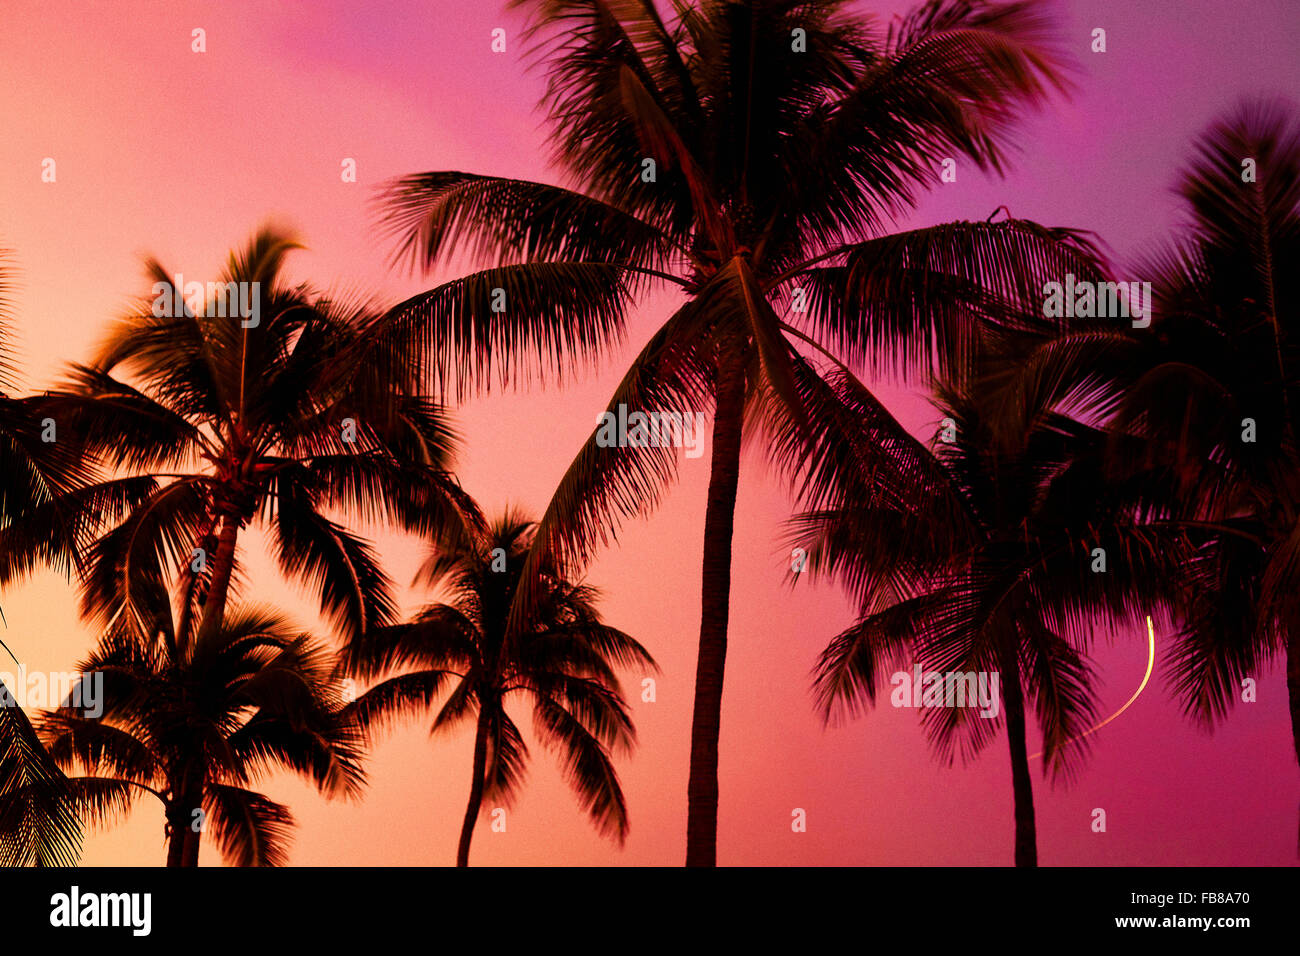 Low angle view of silhouette palm trees against sky during sunset - Stock Image